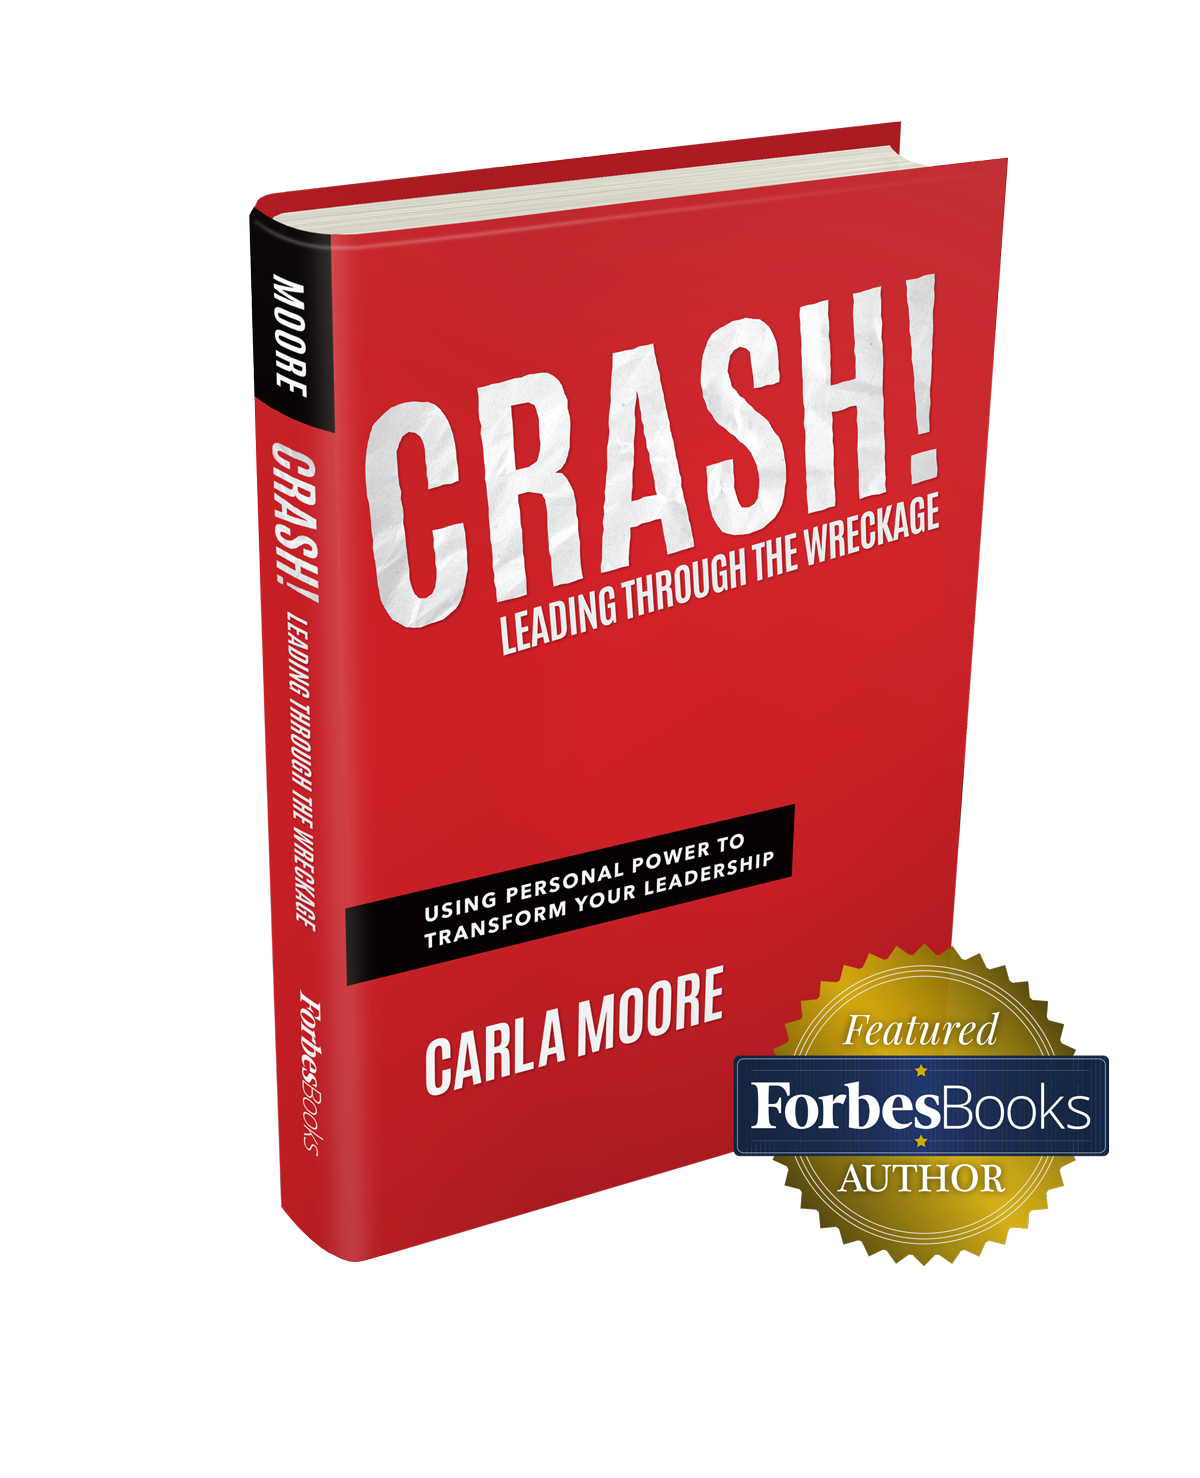 Crash! Leading Through The Wreckage - Book Cover